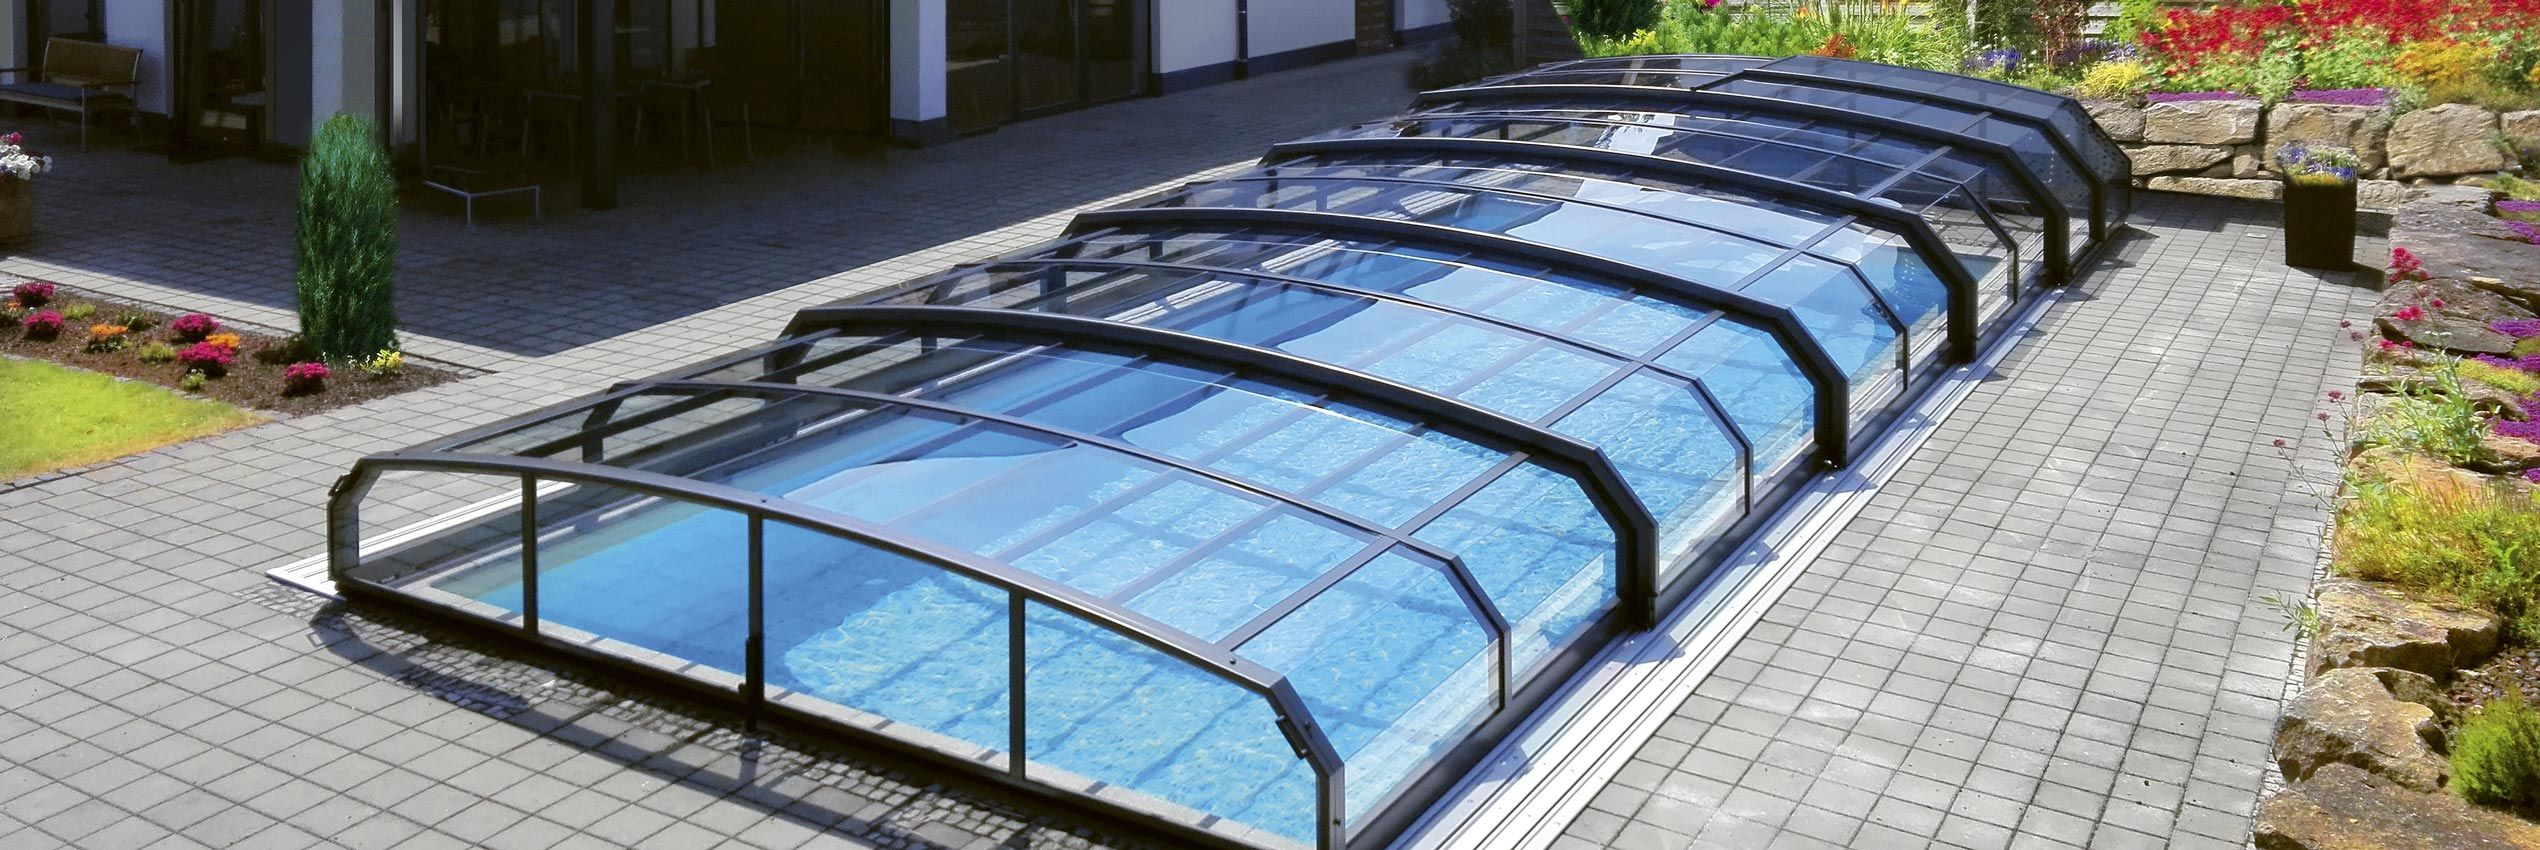 hero-pool-enclosure-oceanic-low-conkover-03